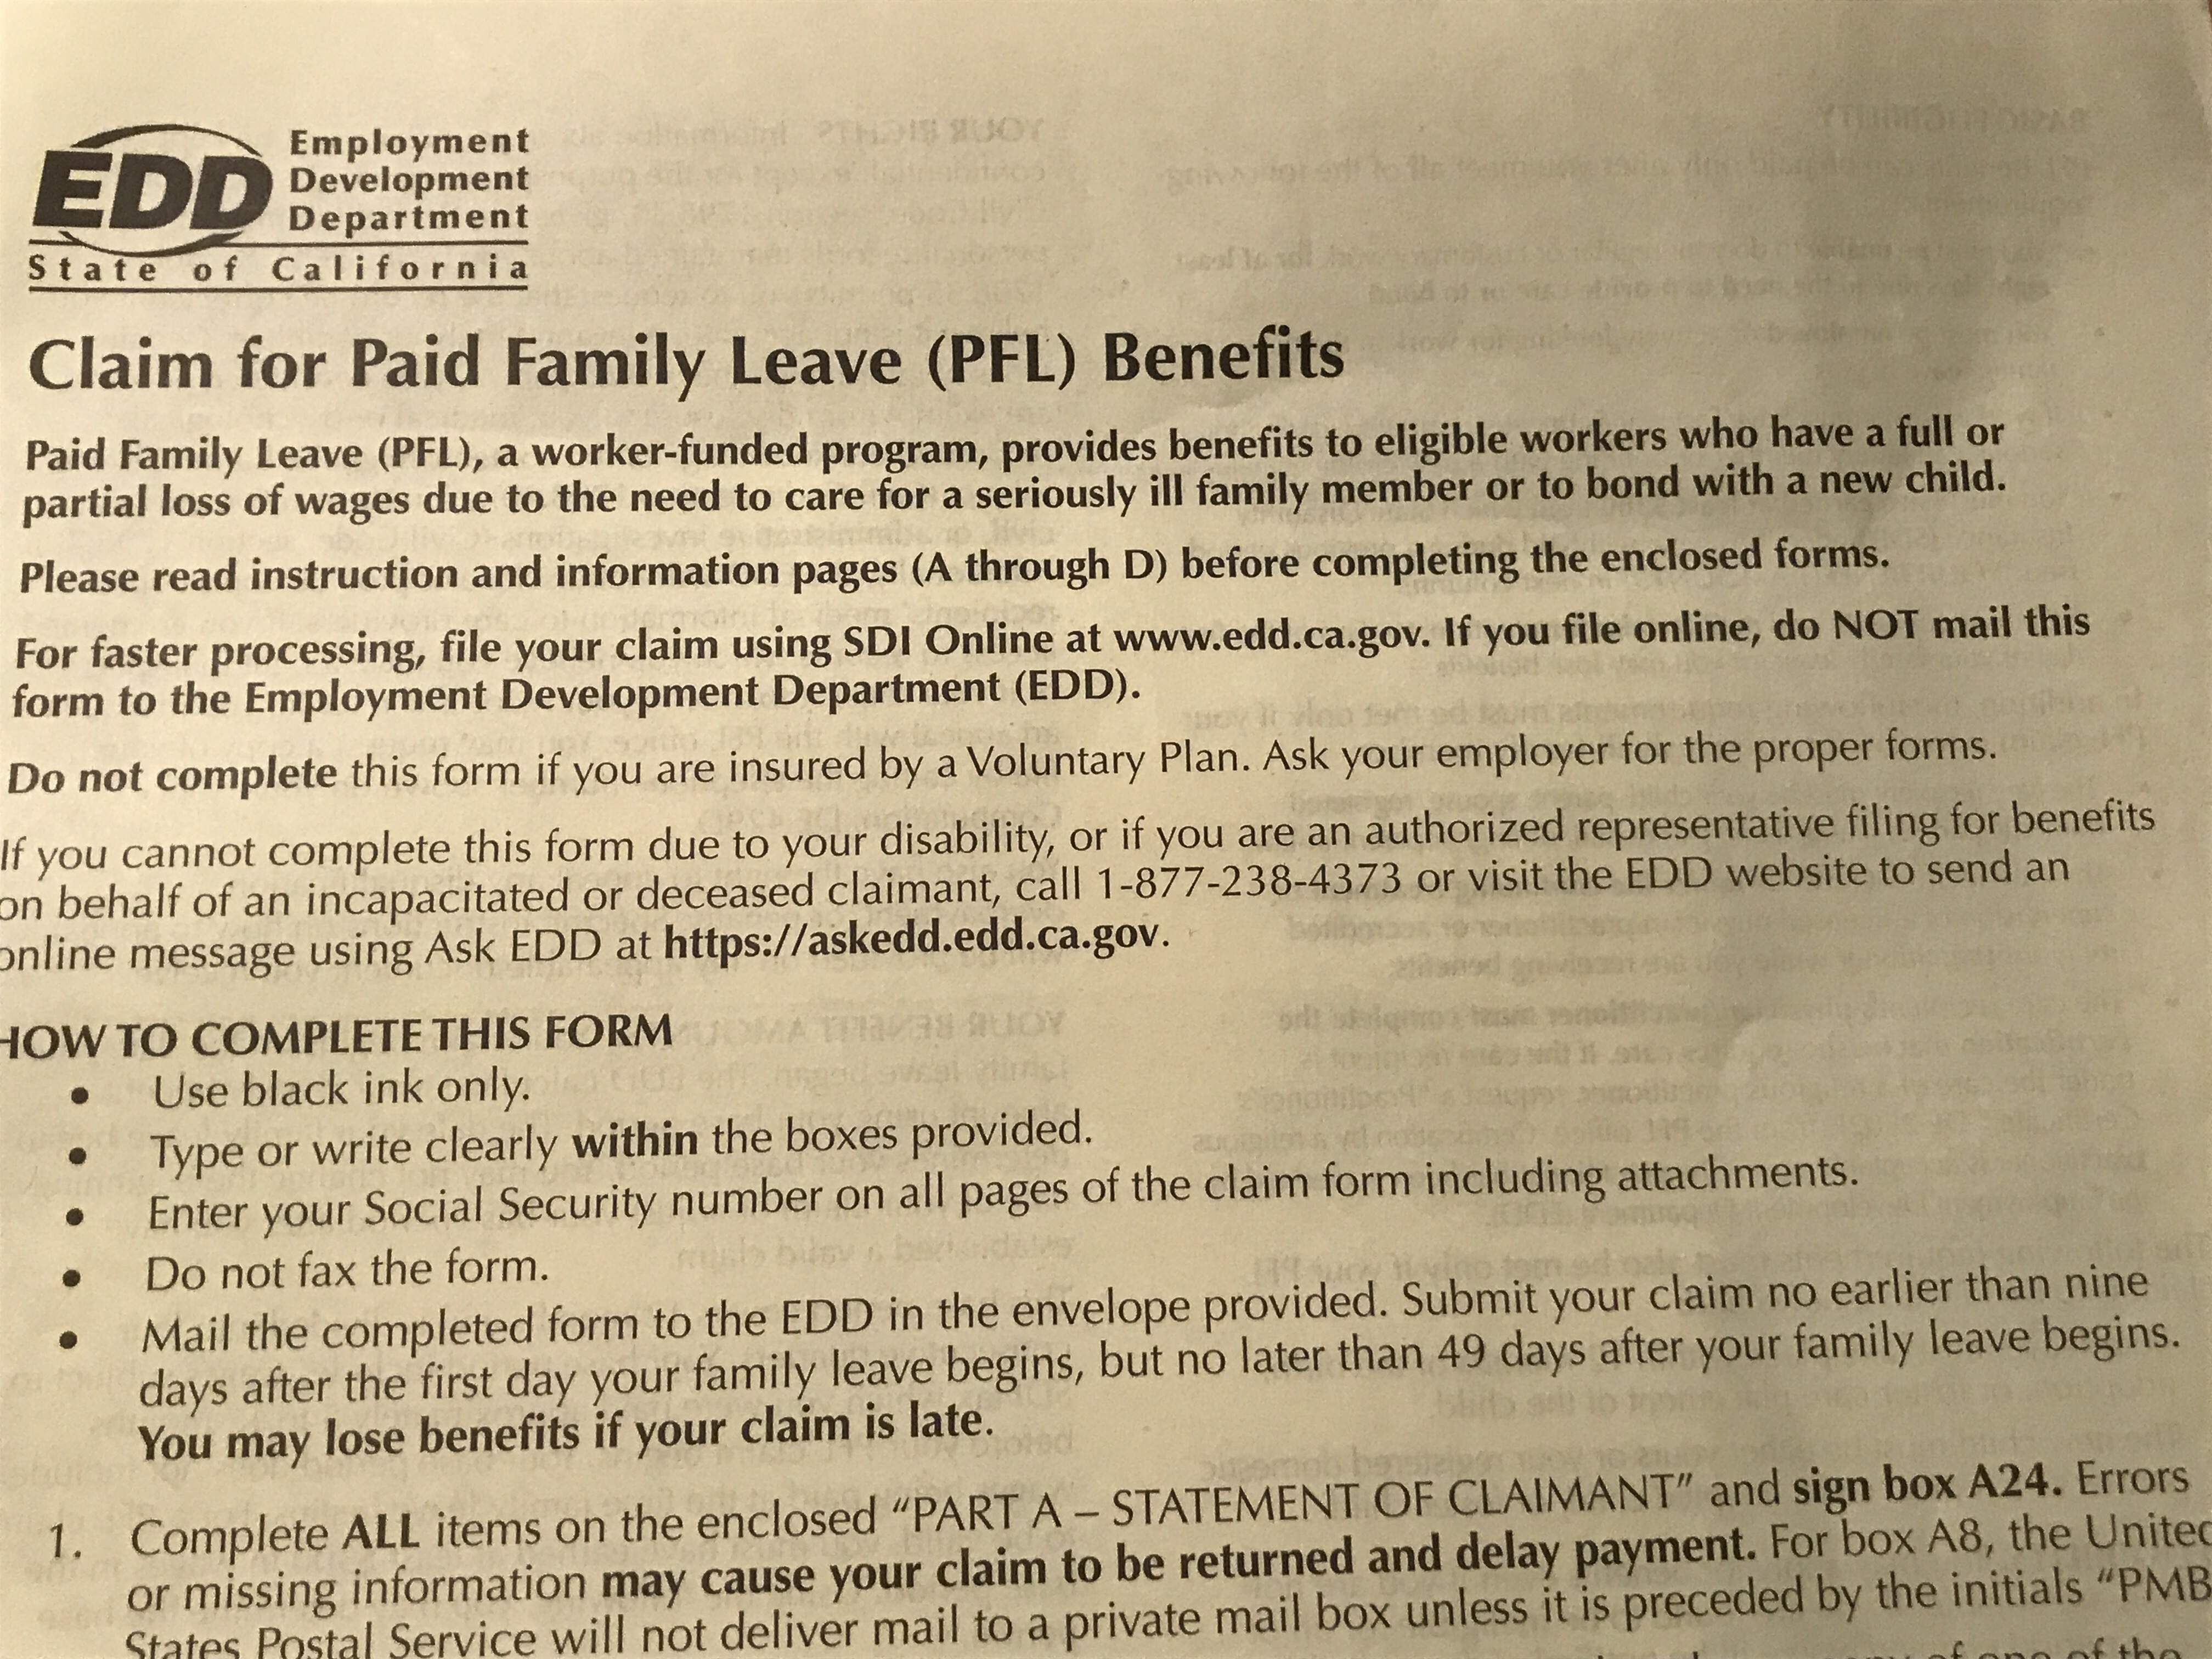 pregnancy disability and paid family leave information session